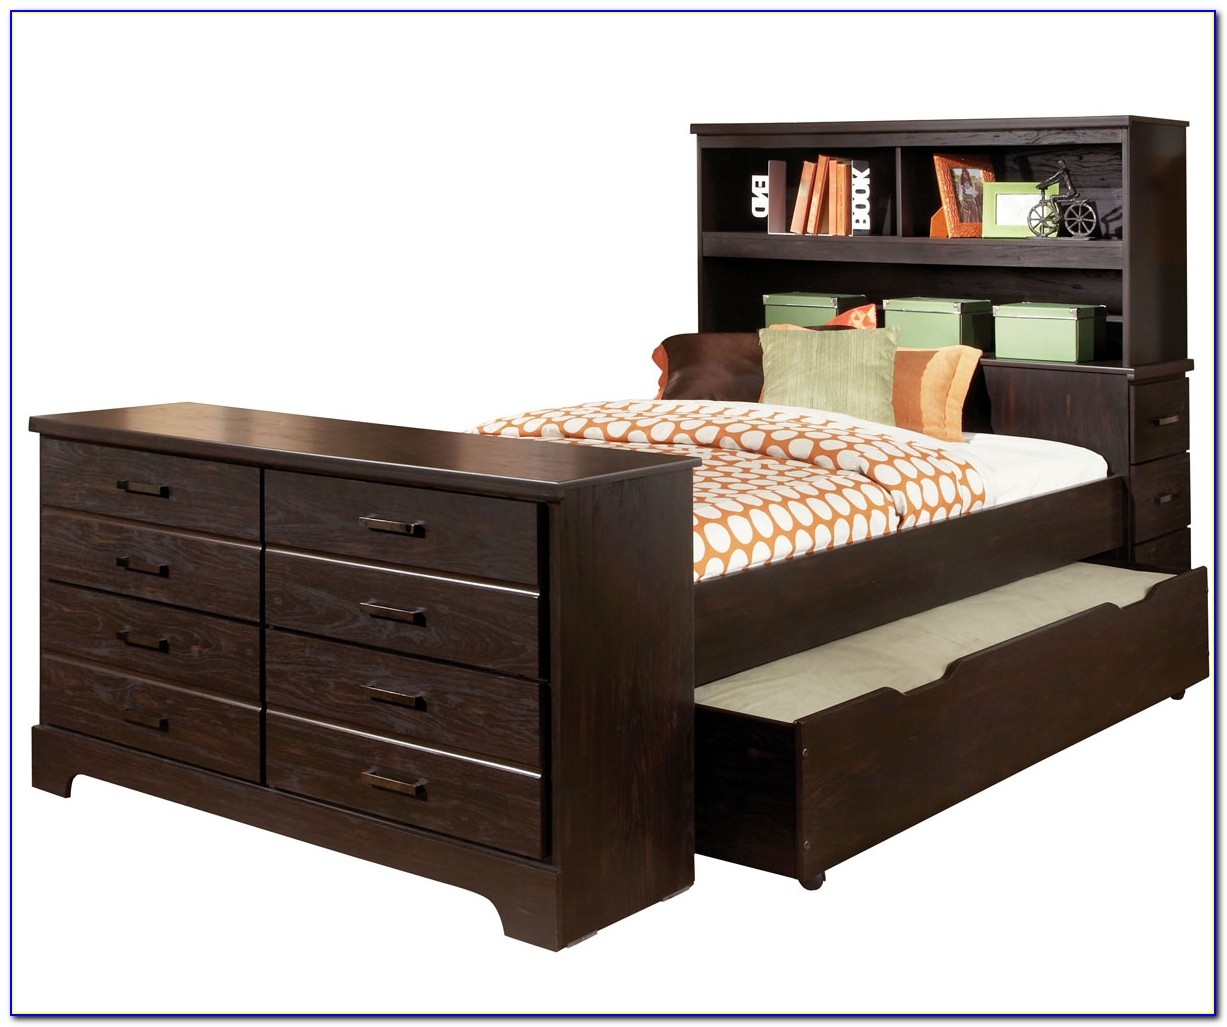 Full Size Bed With Bookshelf Headboard